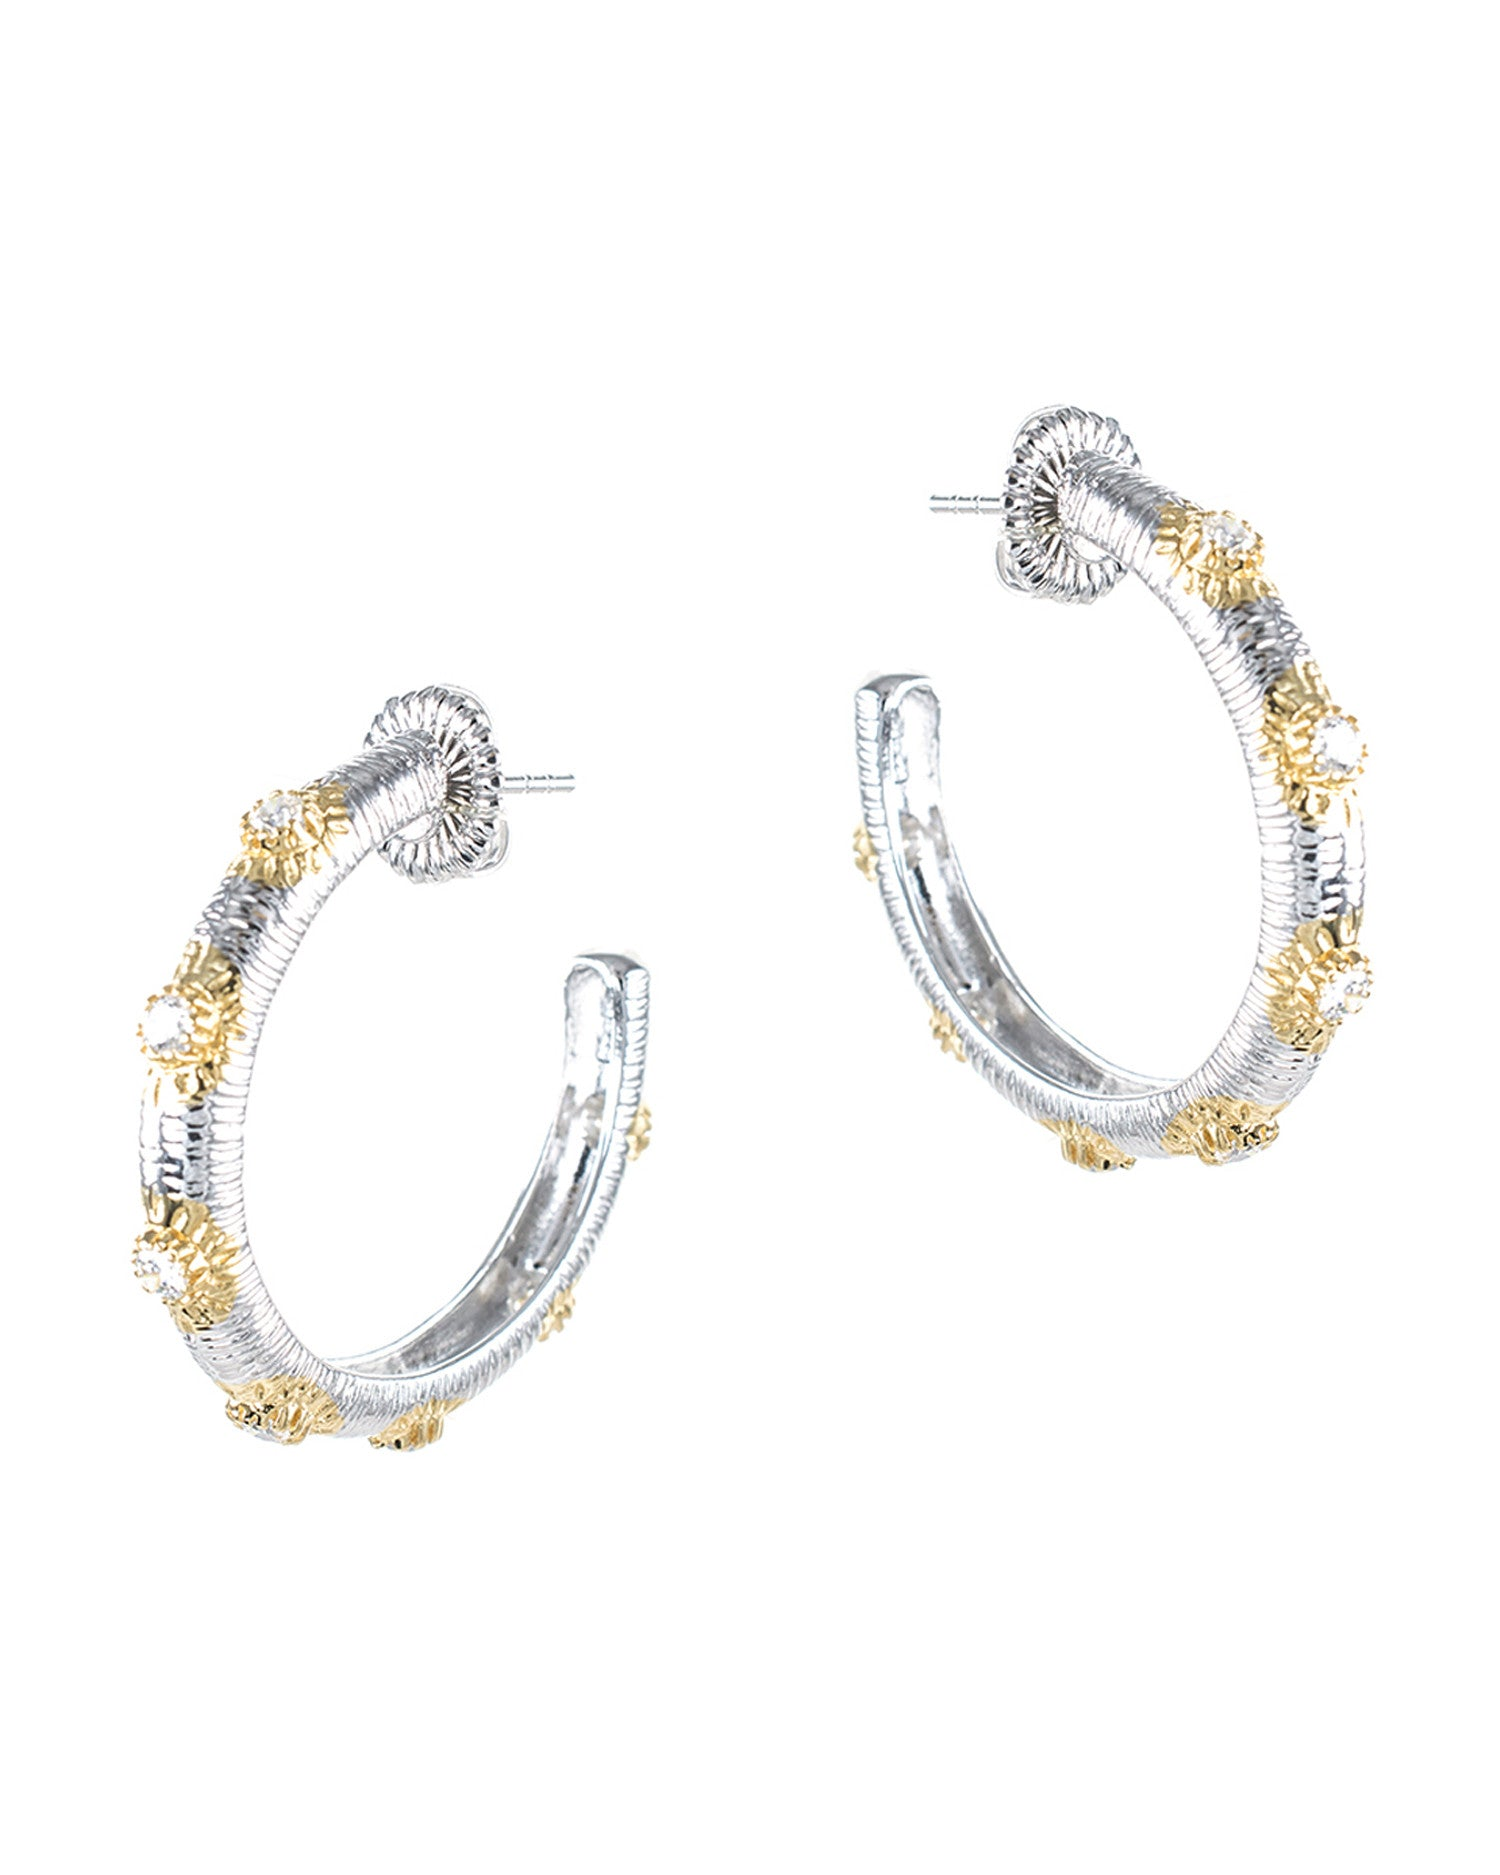 Sunburst Hoop Earrings